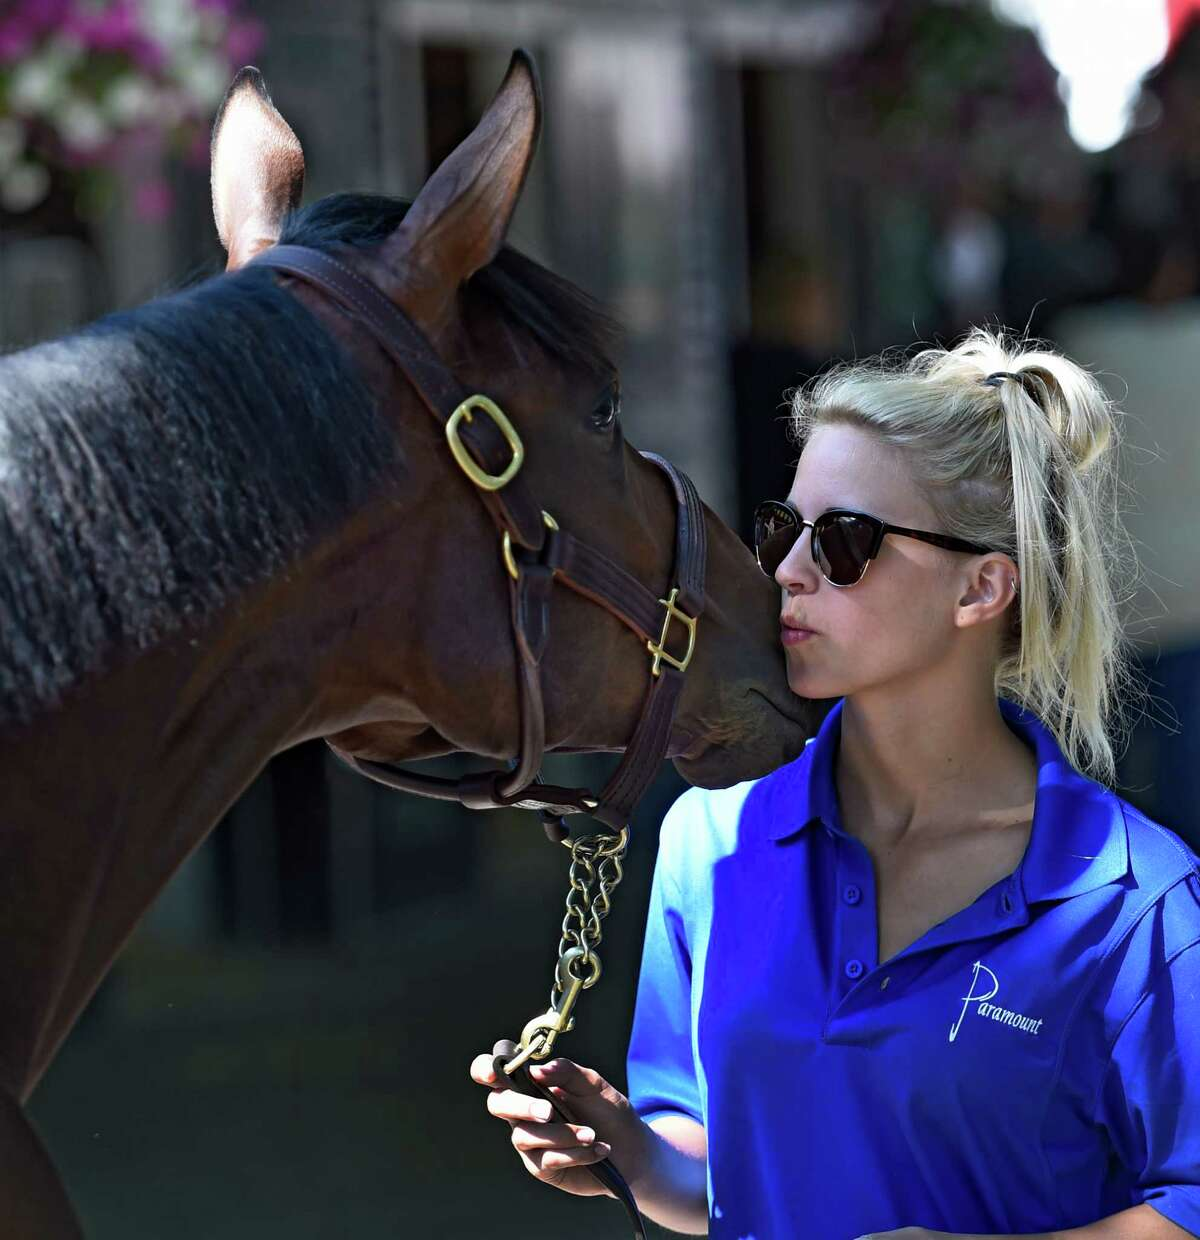 Showman Kendall Marchi 23, of Gerogetown, KY gives a smooch to Hip 159 in the Paramount Sales consignment at Fasig-Tipton in the hours before the sale this evening, Monday Aug. 8, 2016 in Saratoga Springs, N.Y. (Skip Dickstein/Times Union)